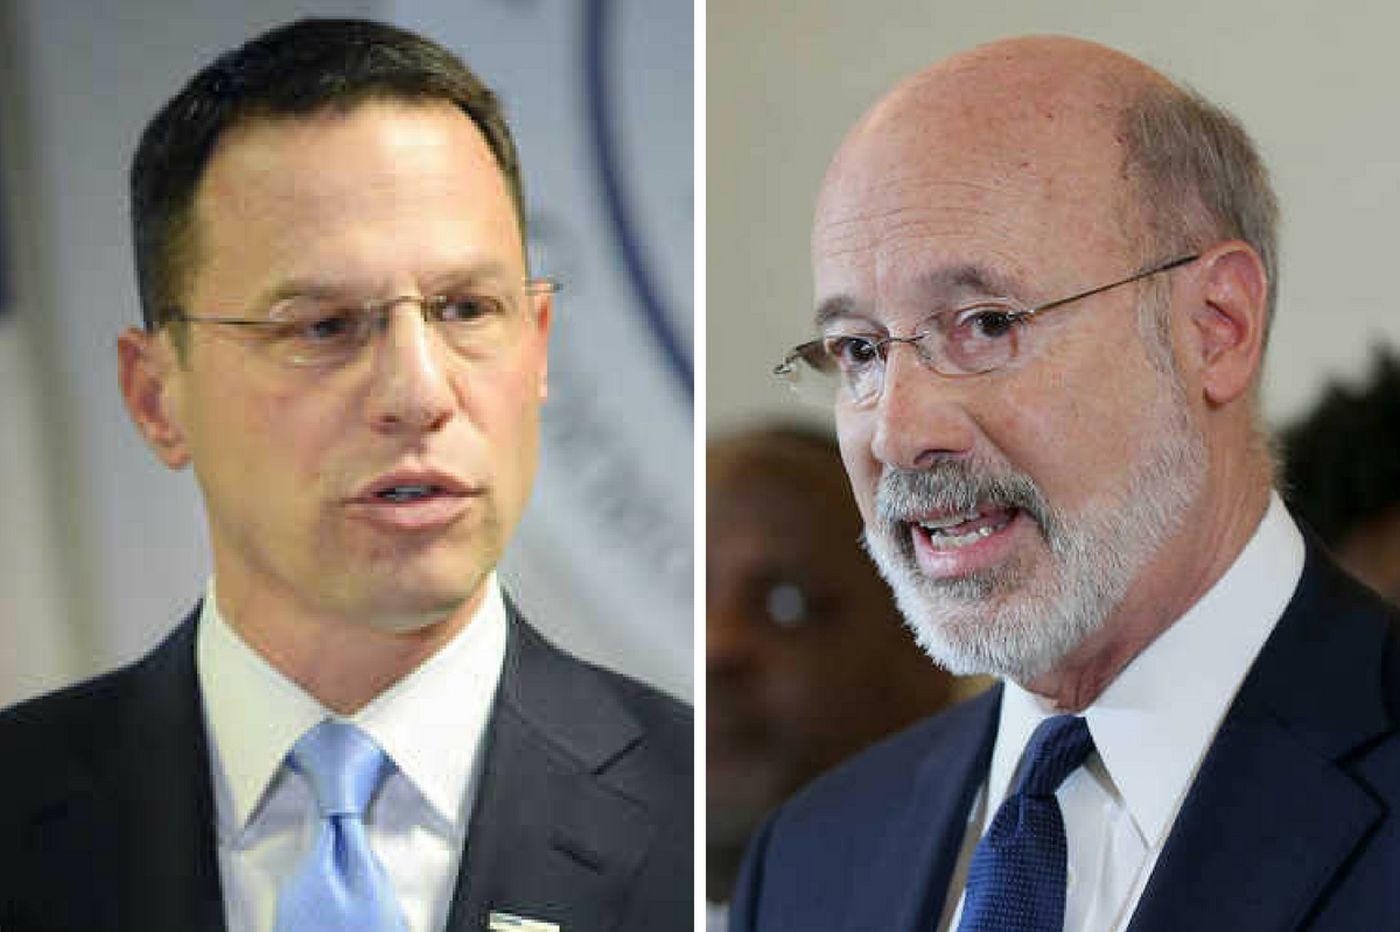 Tom Wolf and Josh Shapiro: State leaders don't need the federal government's permission to do what's right | Opinion